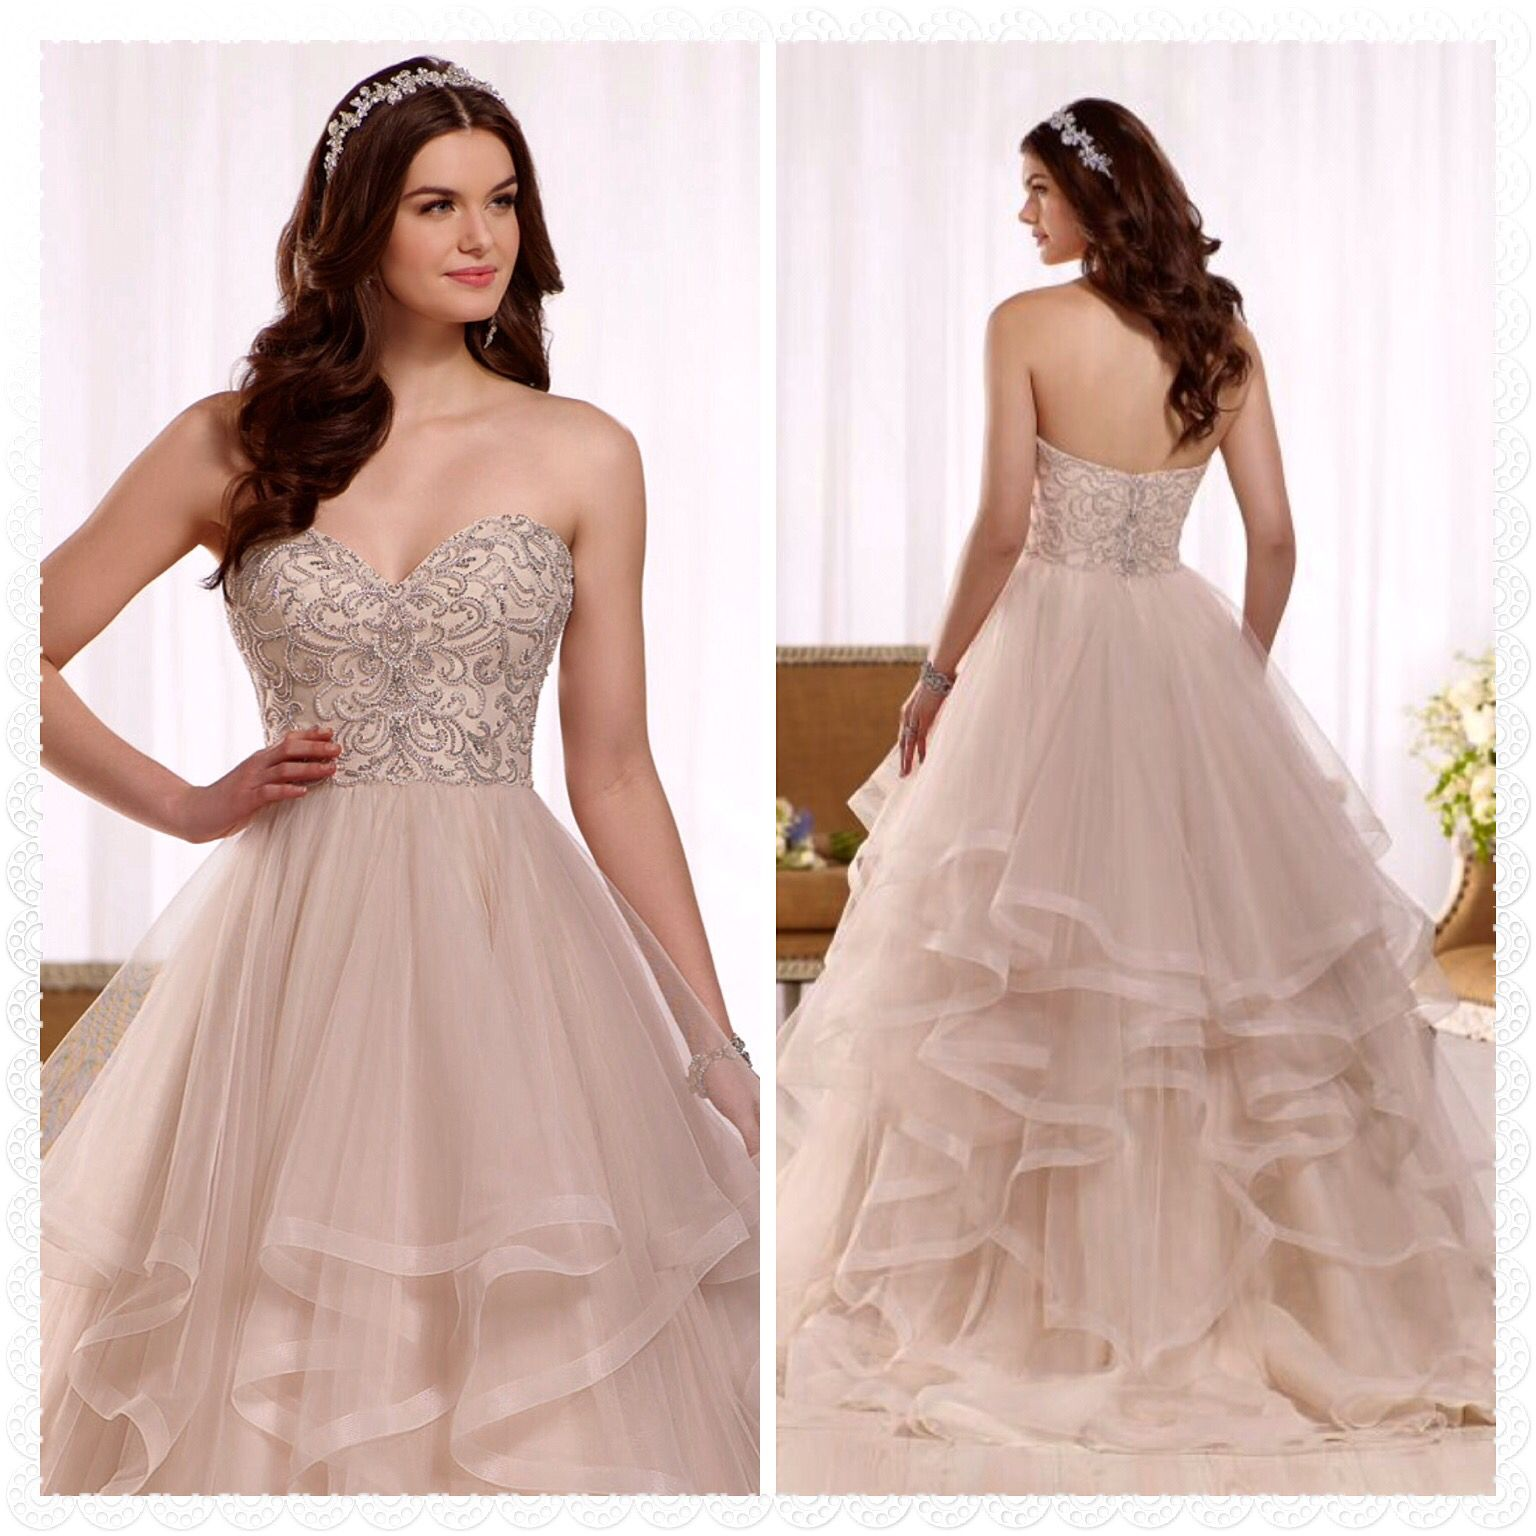 Lovely Blush Ball Gown With Textured Bottom Colored Wedding